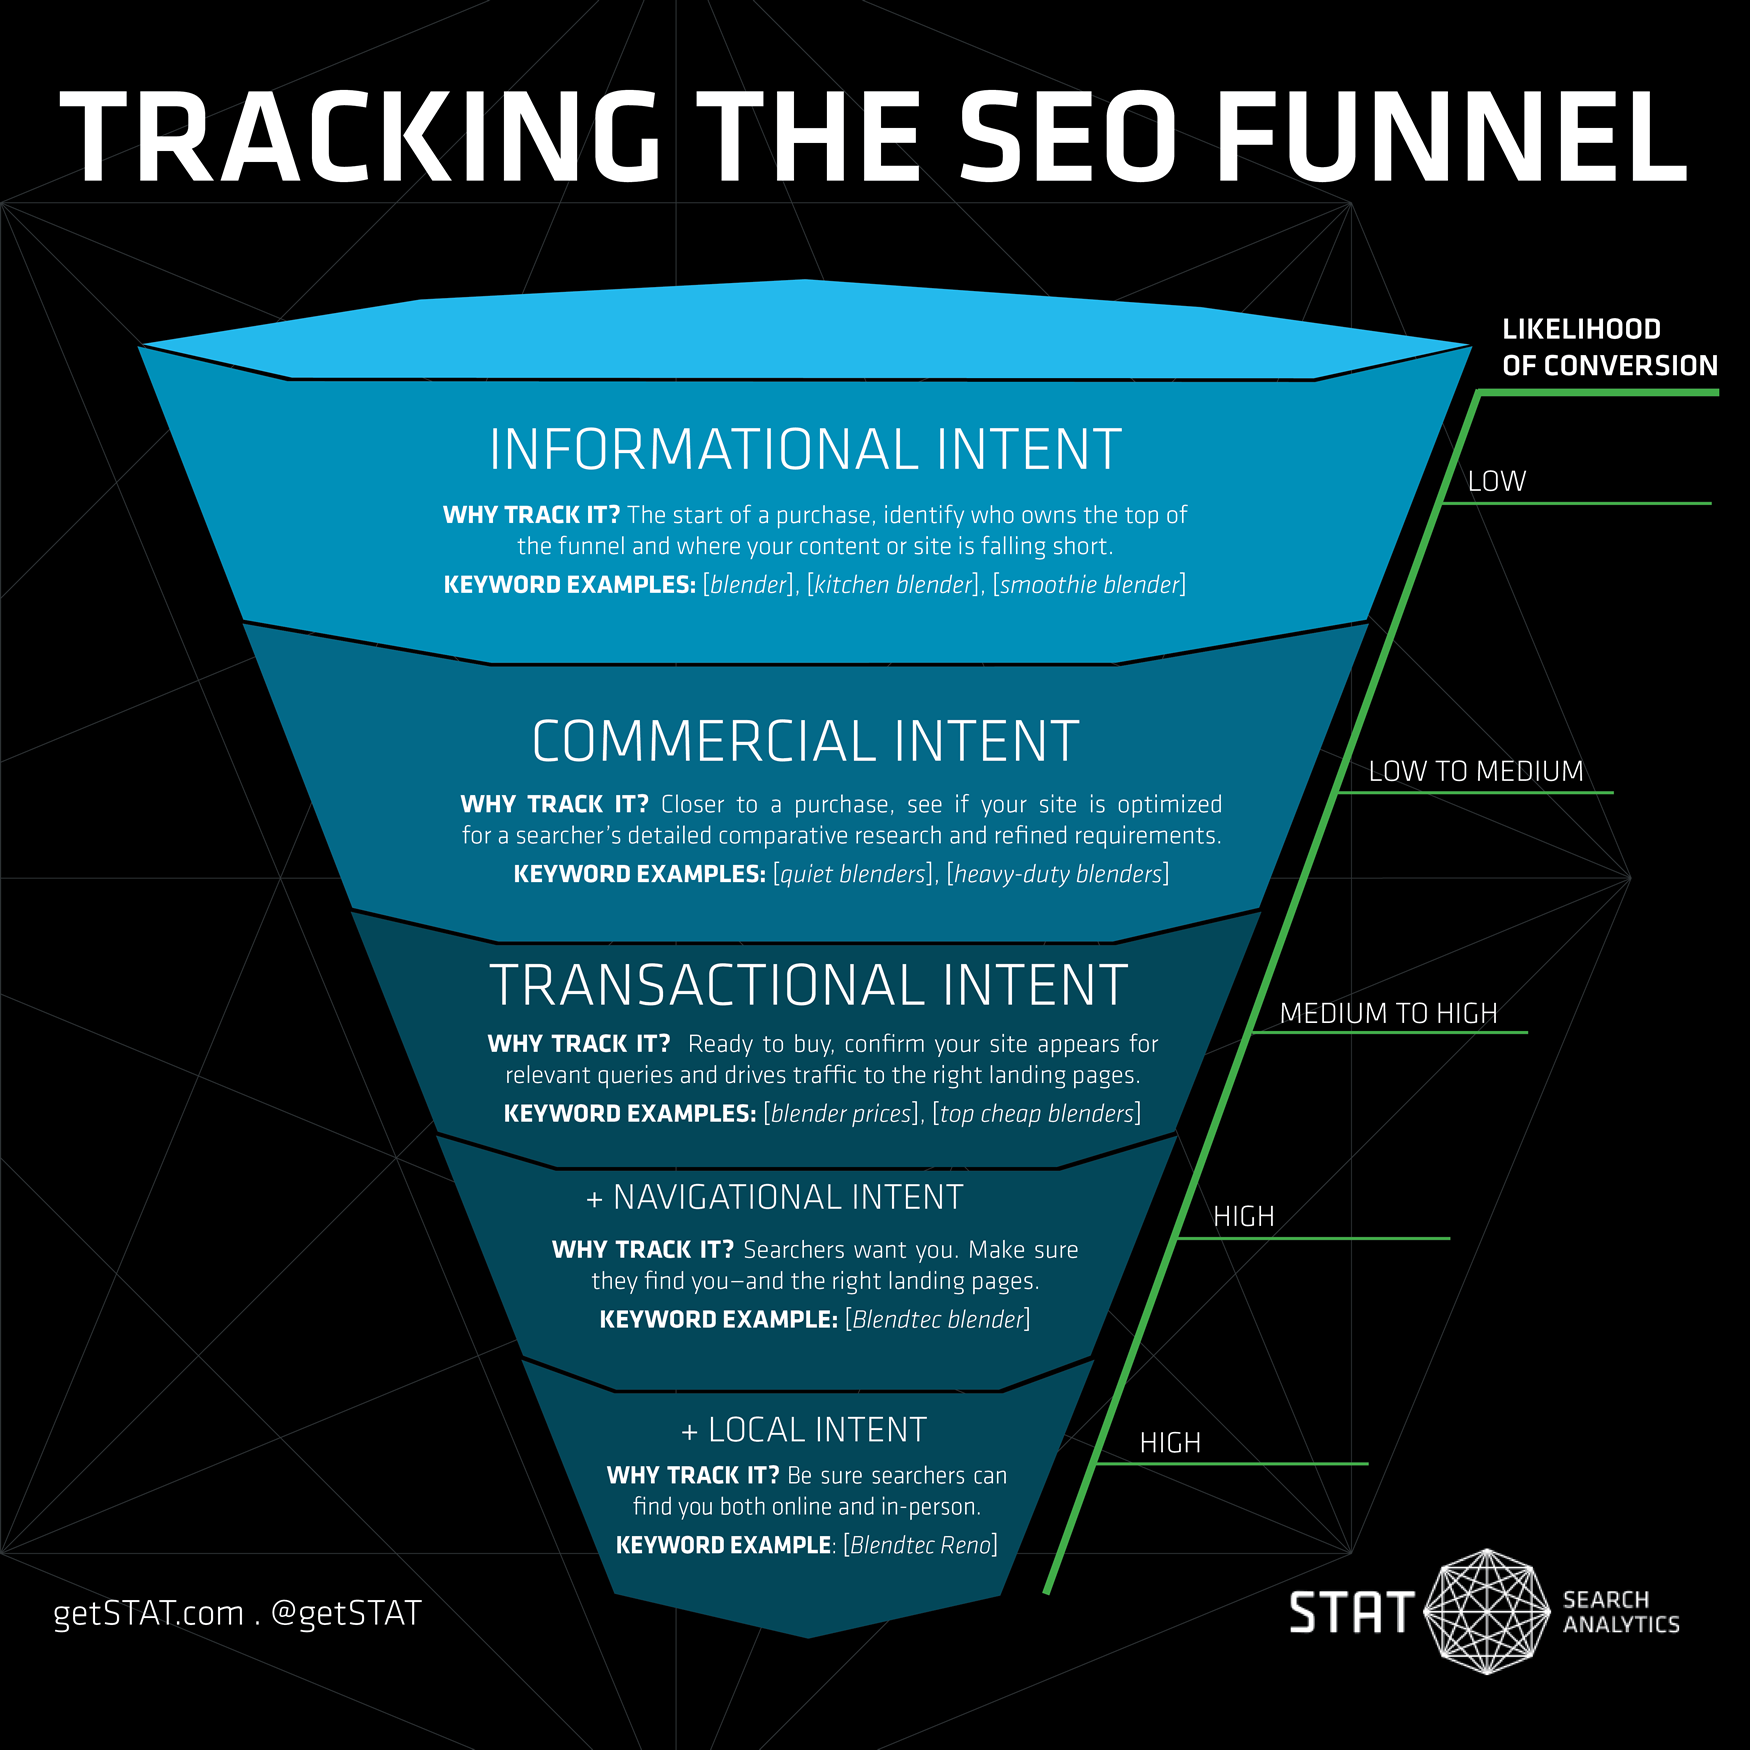 Track how a buyer searches for your products - from start to finish with the SEO funnel.